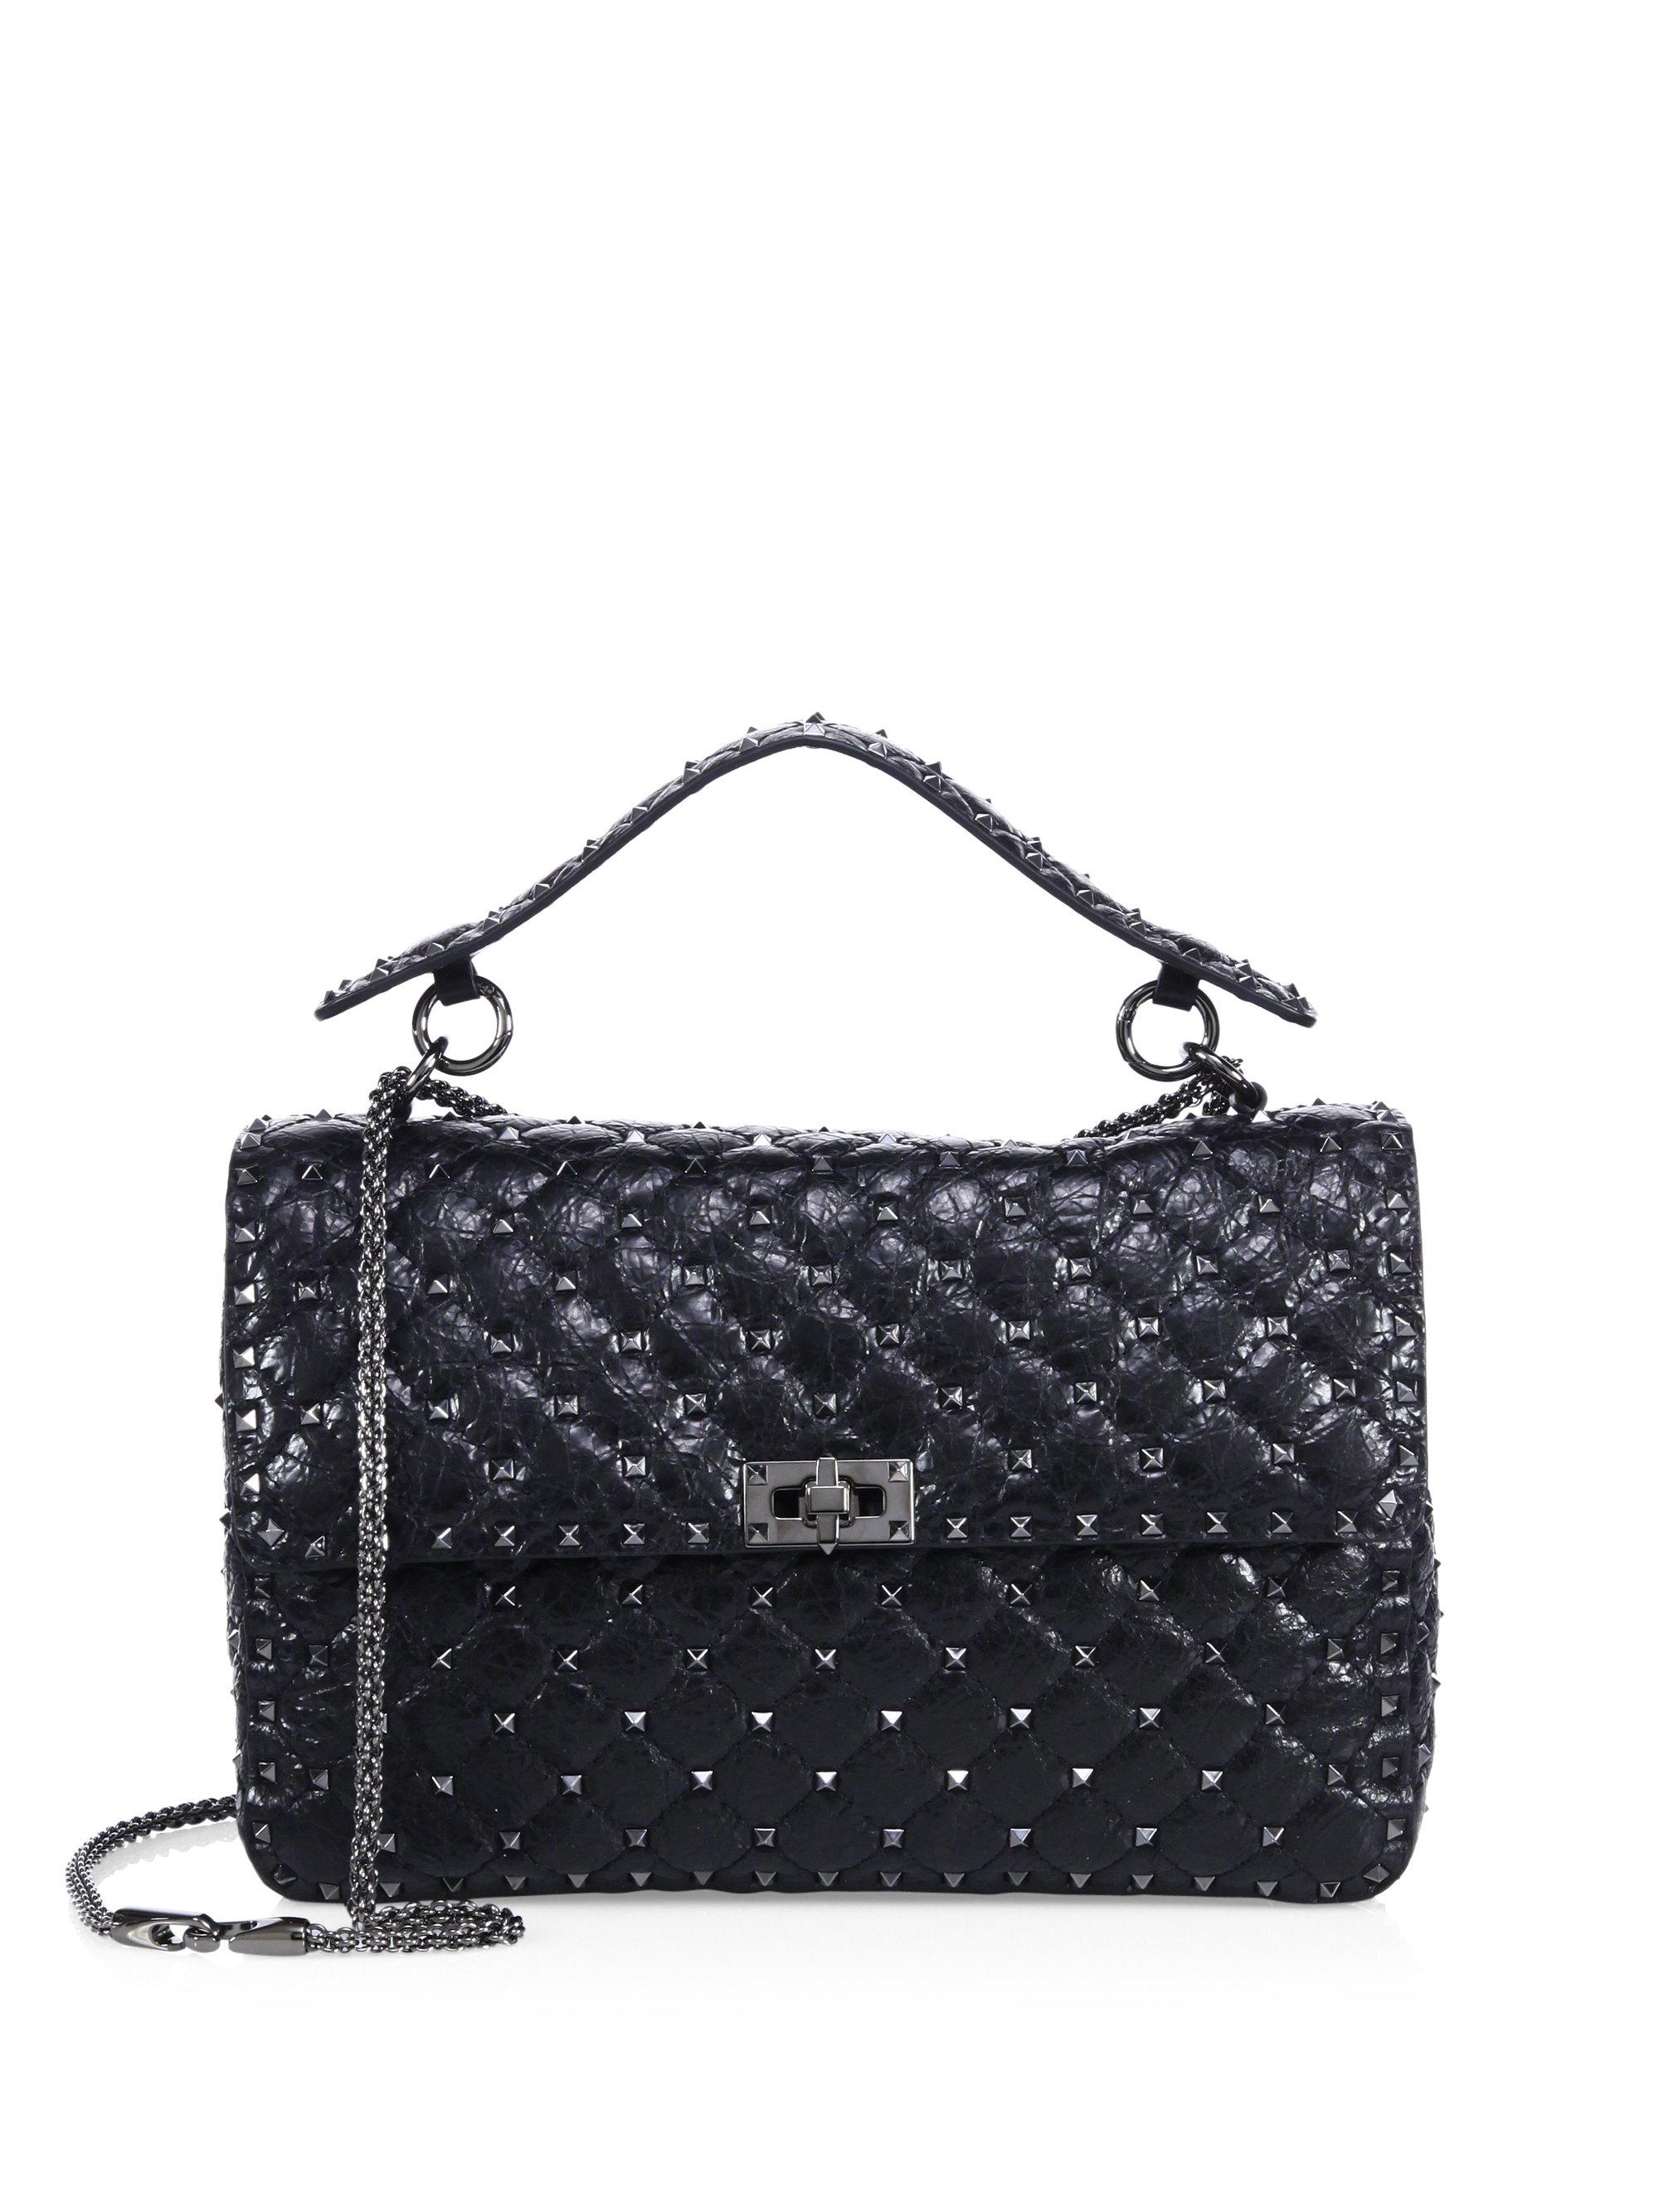 b5c6ed41d41c Lyst - Valentino Rockstud Spike Large Quilted Leather Chain Shoulder ...